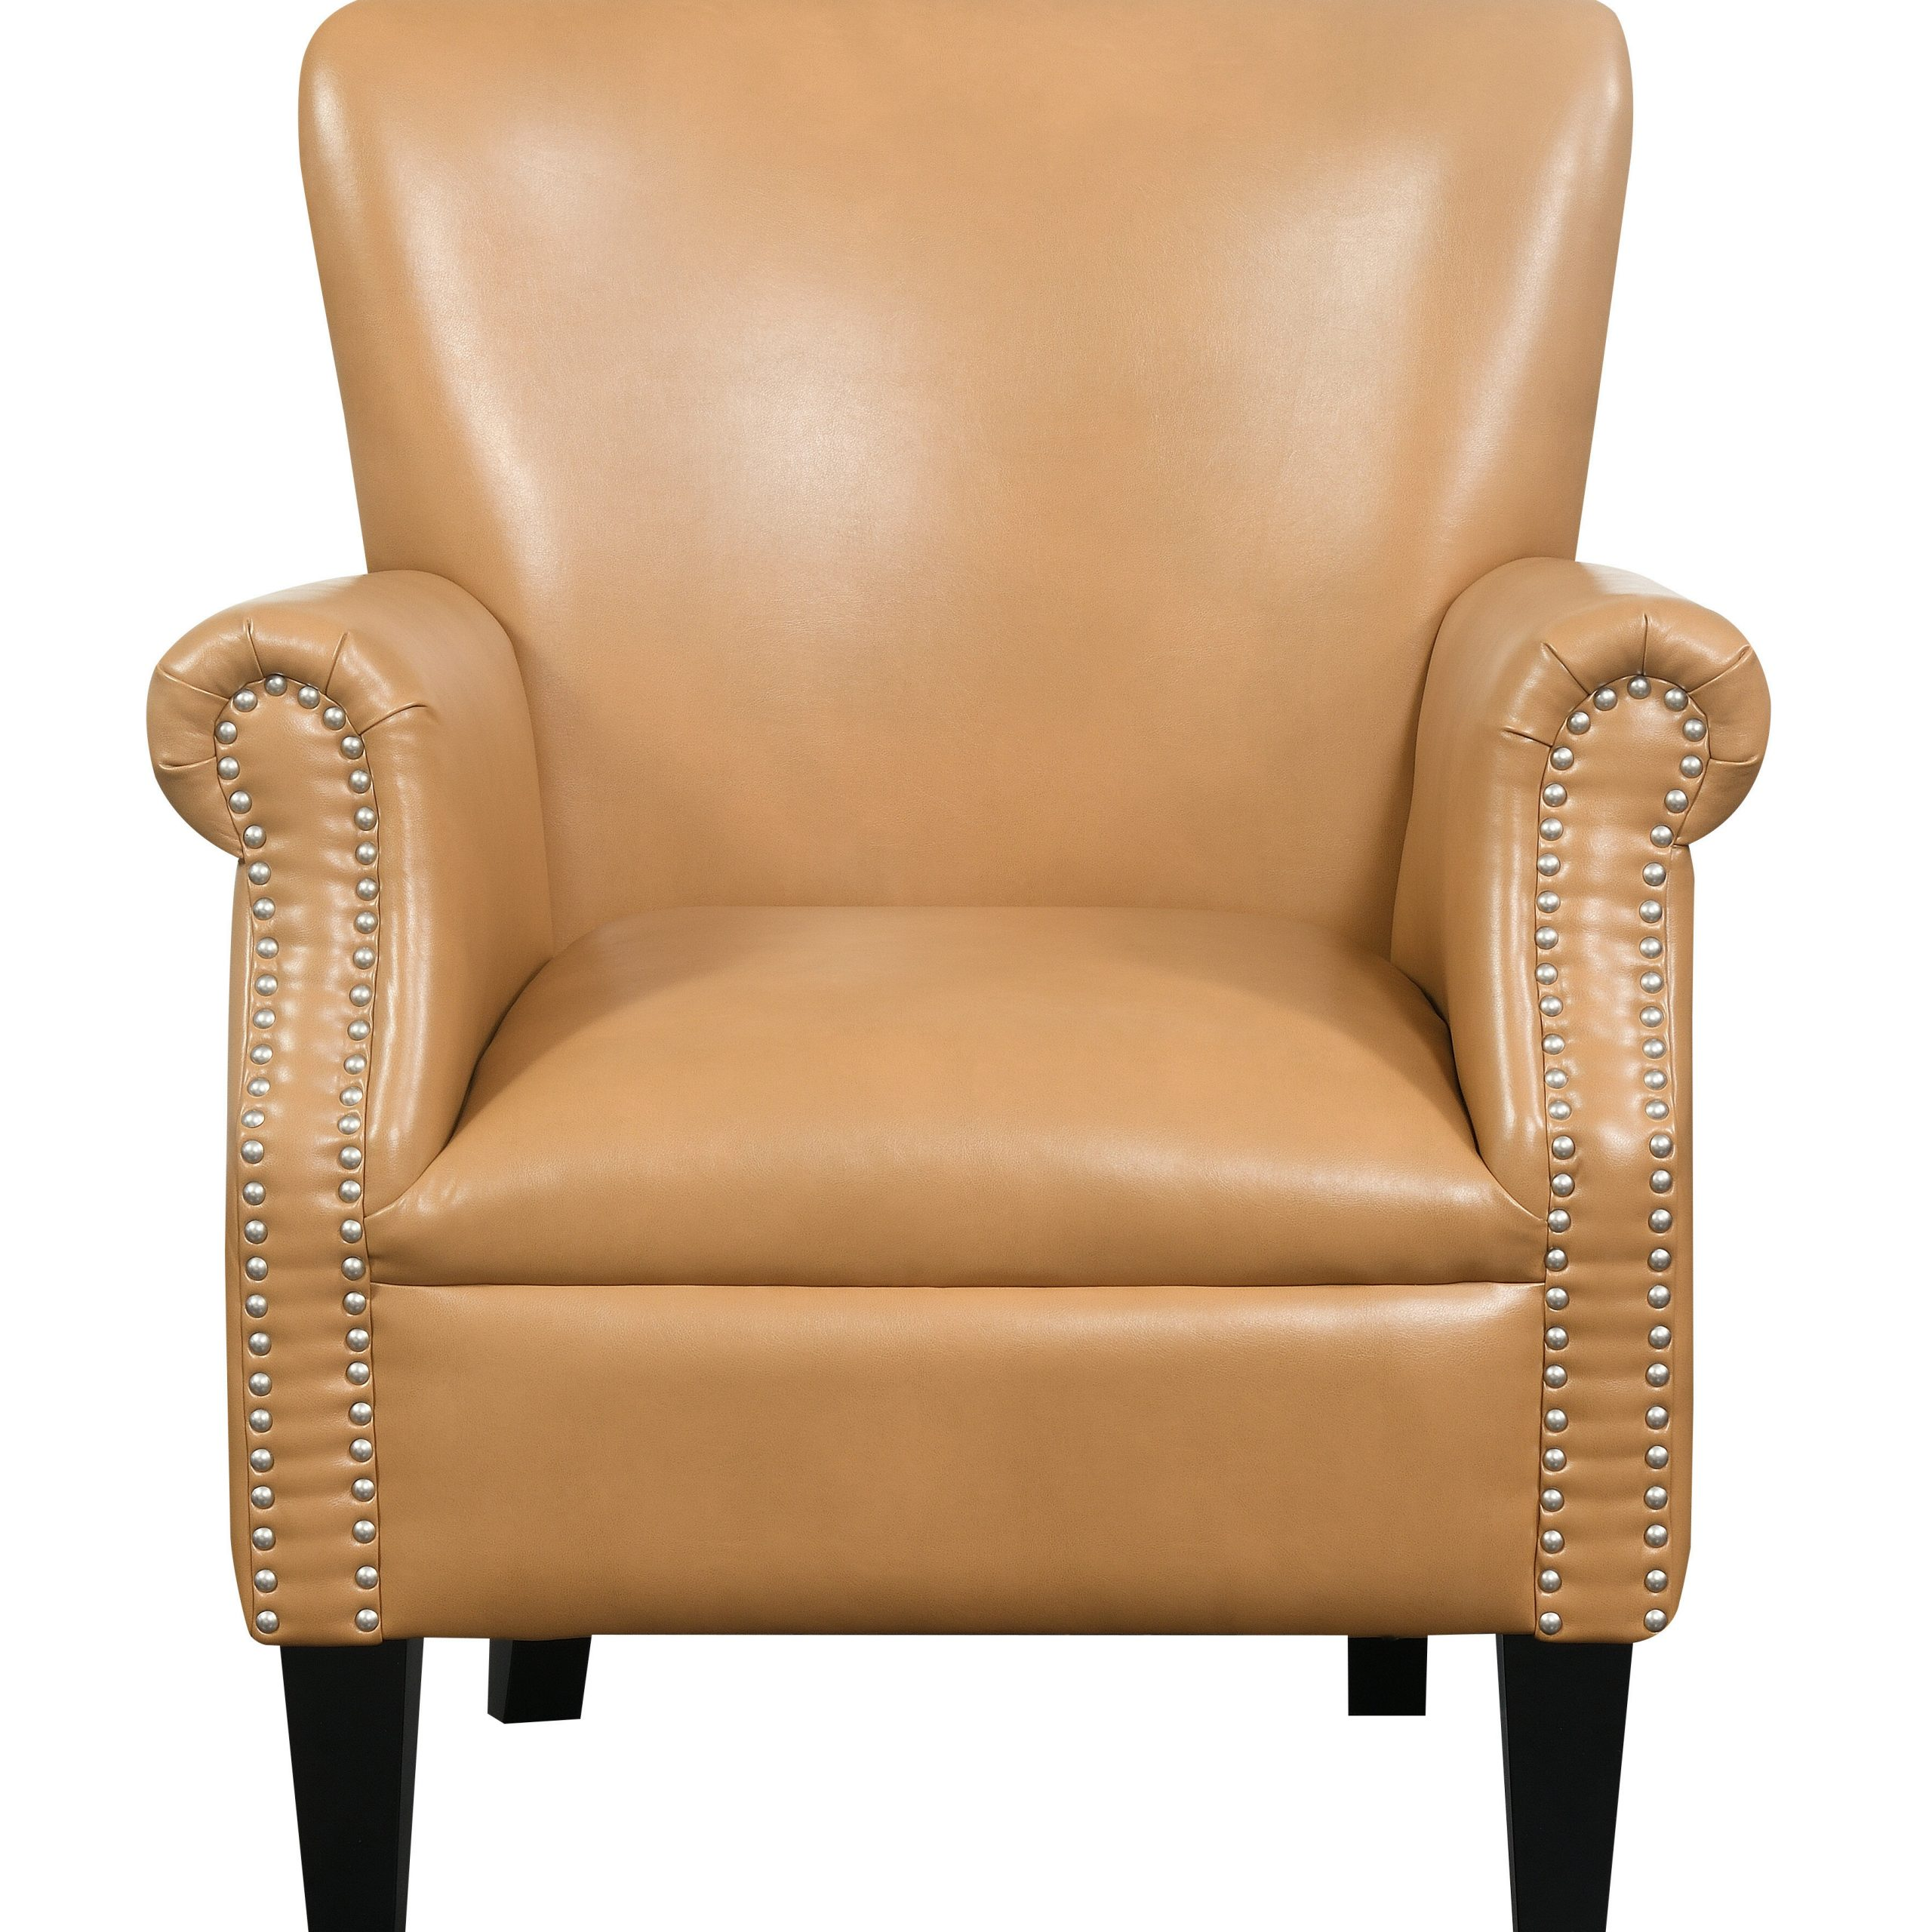 Wayfair Throughout Latest Coomer Faux Leather Barrel Chairs (View 14 of 20)